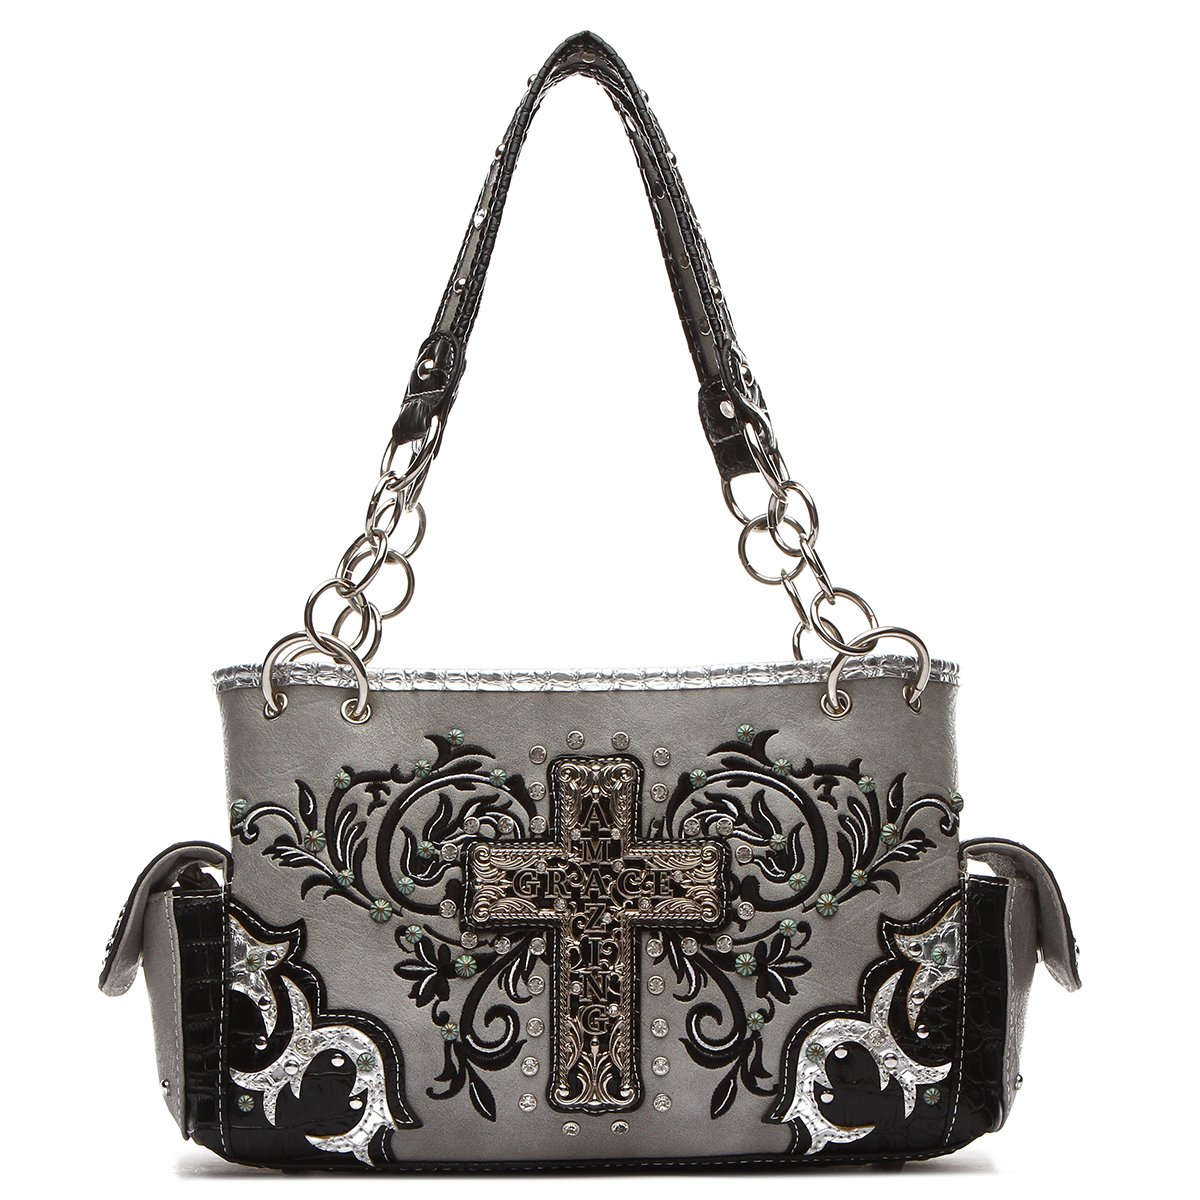 Western Handbag - Metal Amazing Grace Cross and Embroidered Religious Satchel …